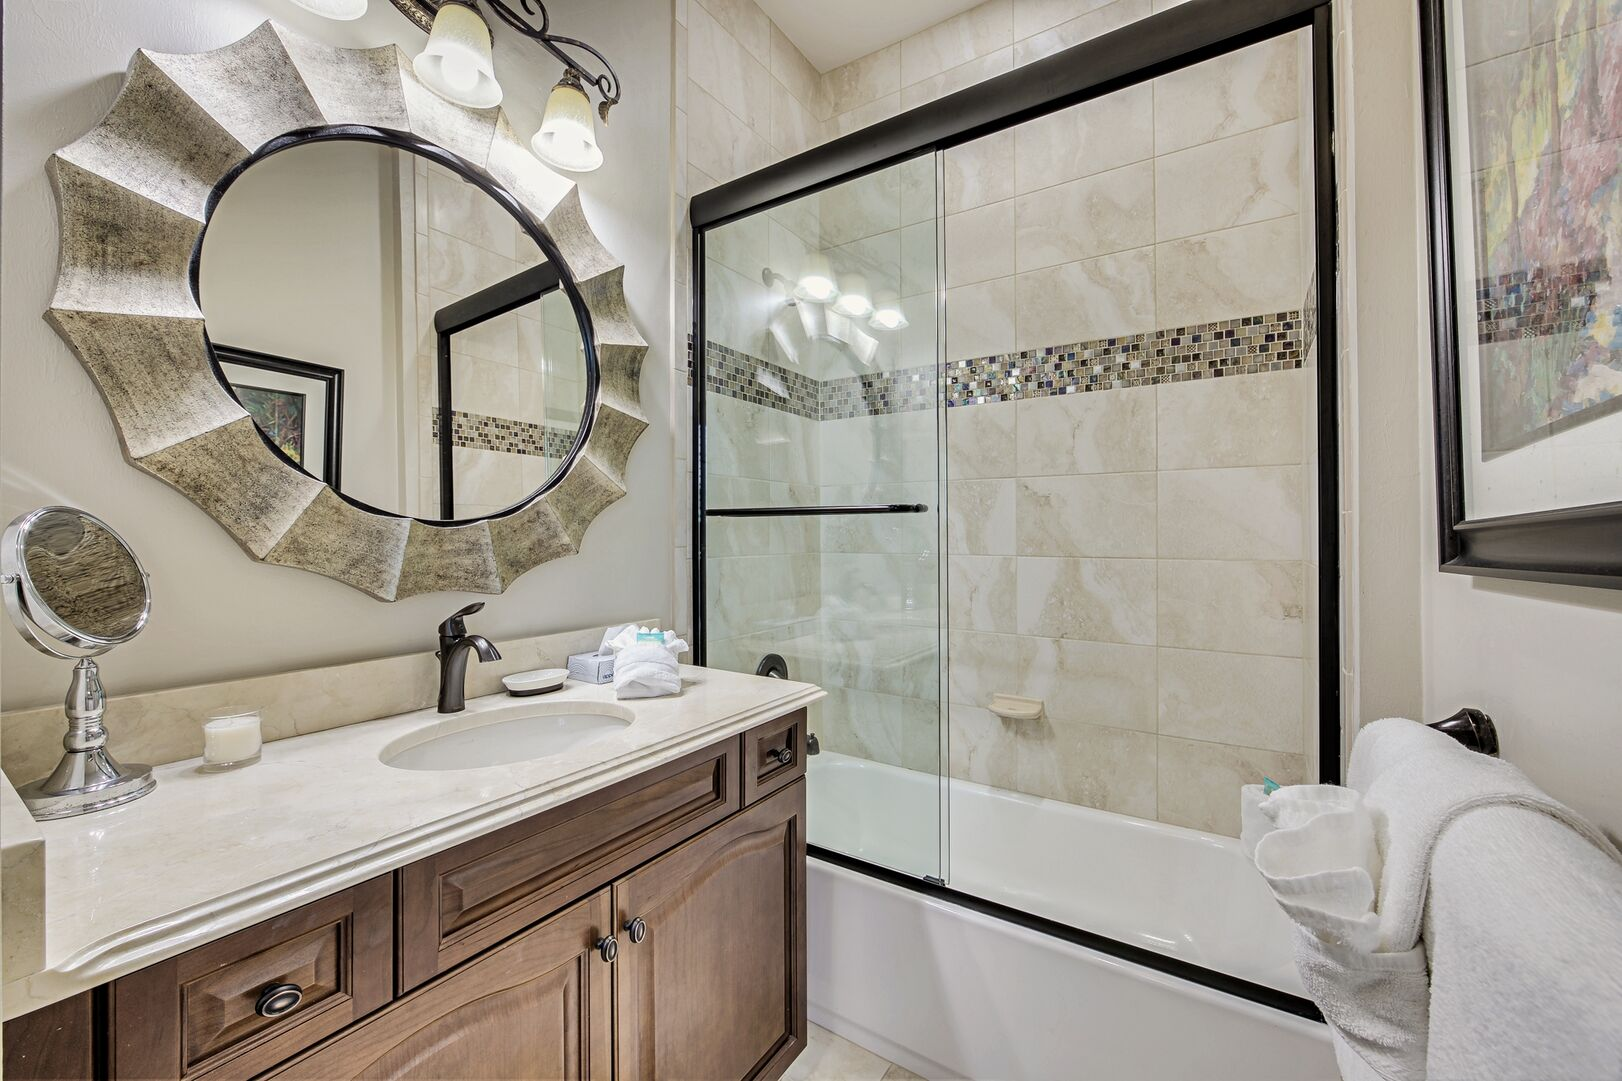 Shower-Tub Combo, Single Vanity Sink, Mirror, Towels, and Wall Lamp.